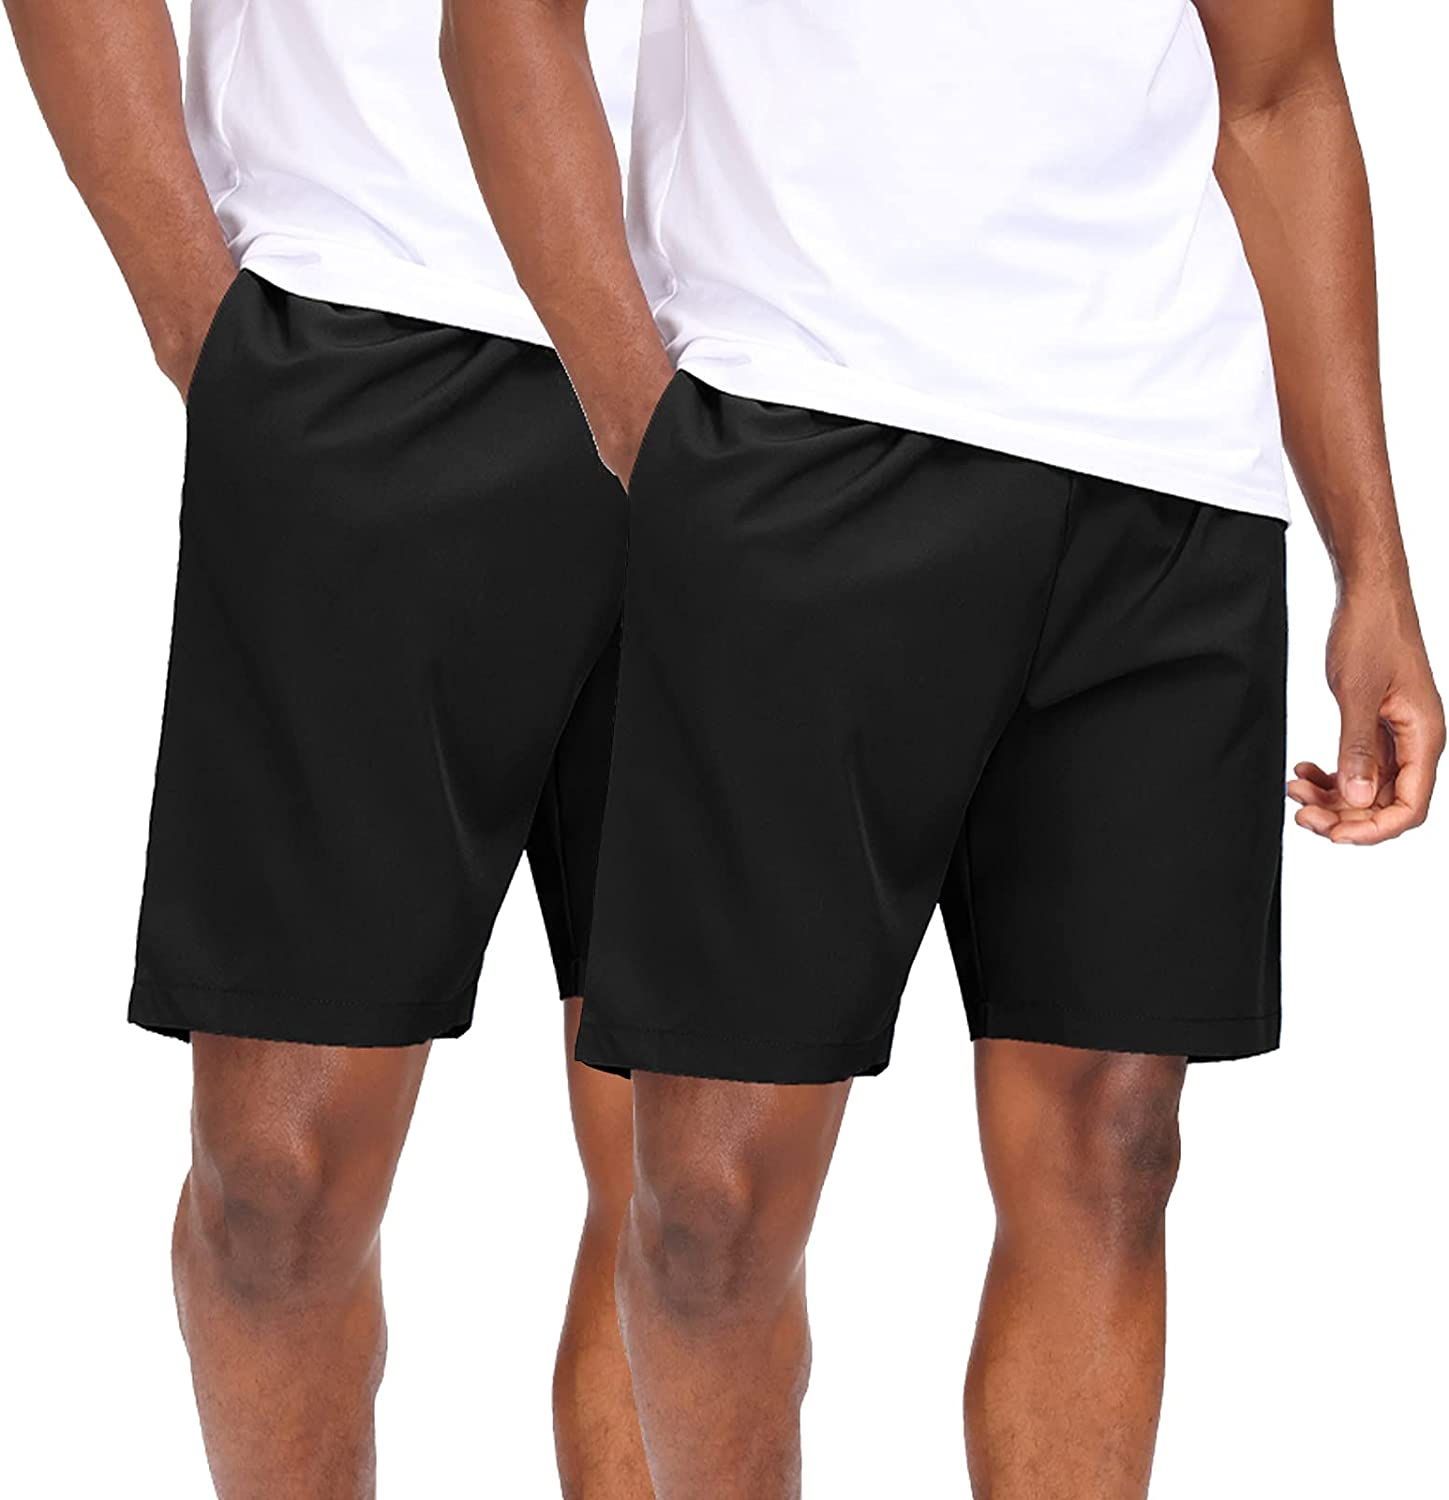 HMIYA Men's New Max 76% OFF York Mall Sports Shorts Quick Dry Pockets for Workout Zip with